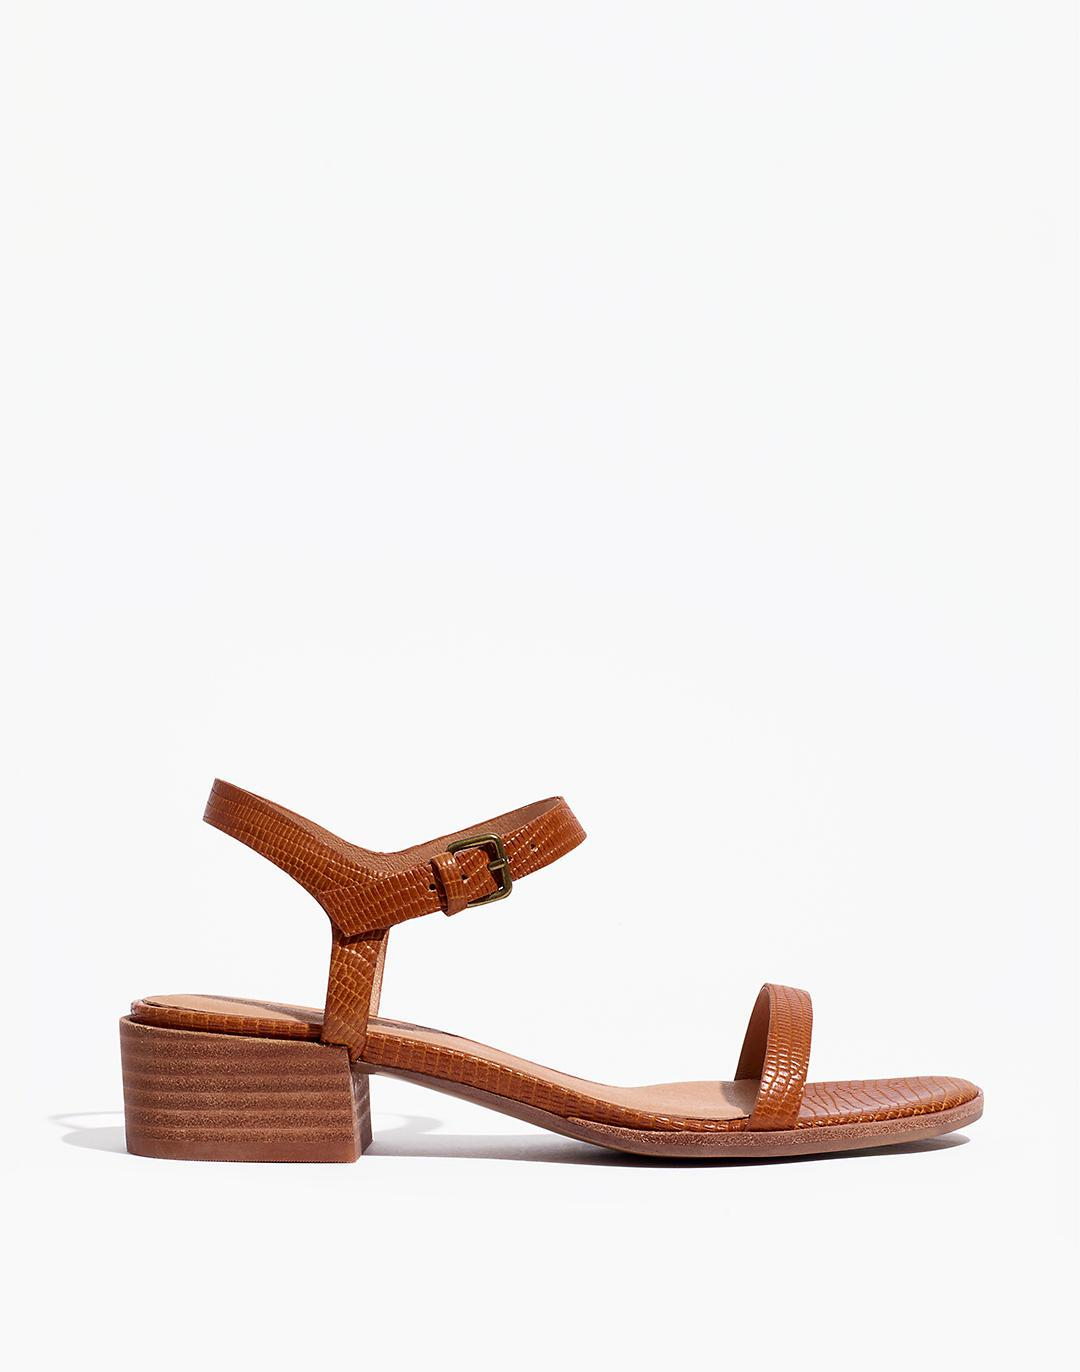 The Louise Sandal in Lizard Embossed Leather 1